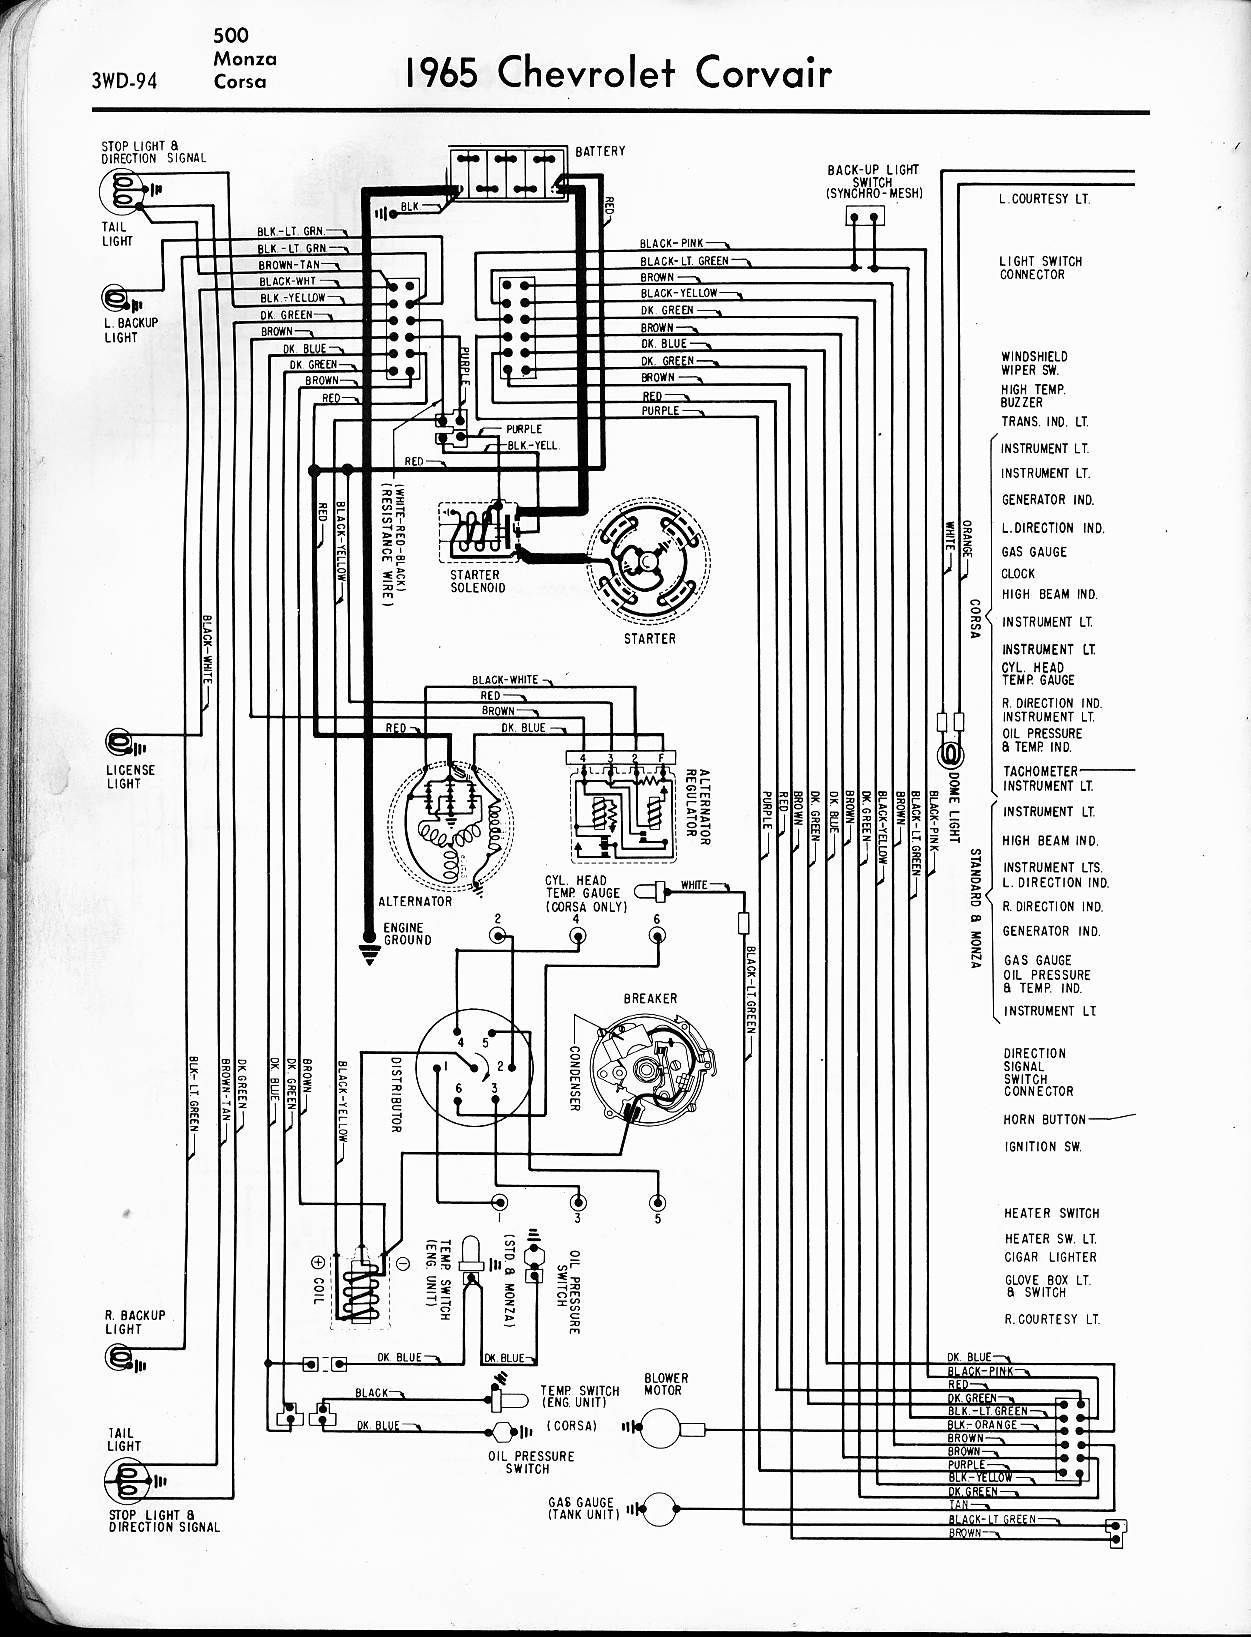 1966 Corvair Wiring Diagram Reinvent Your 66 C10 Diagrams For Chevrolet Electrical Rh Wiringforall Today 1965 Chevy Truck